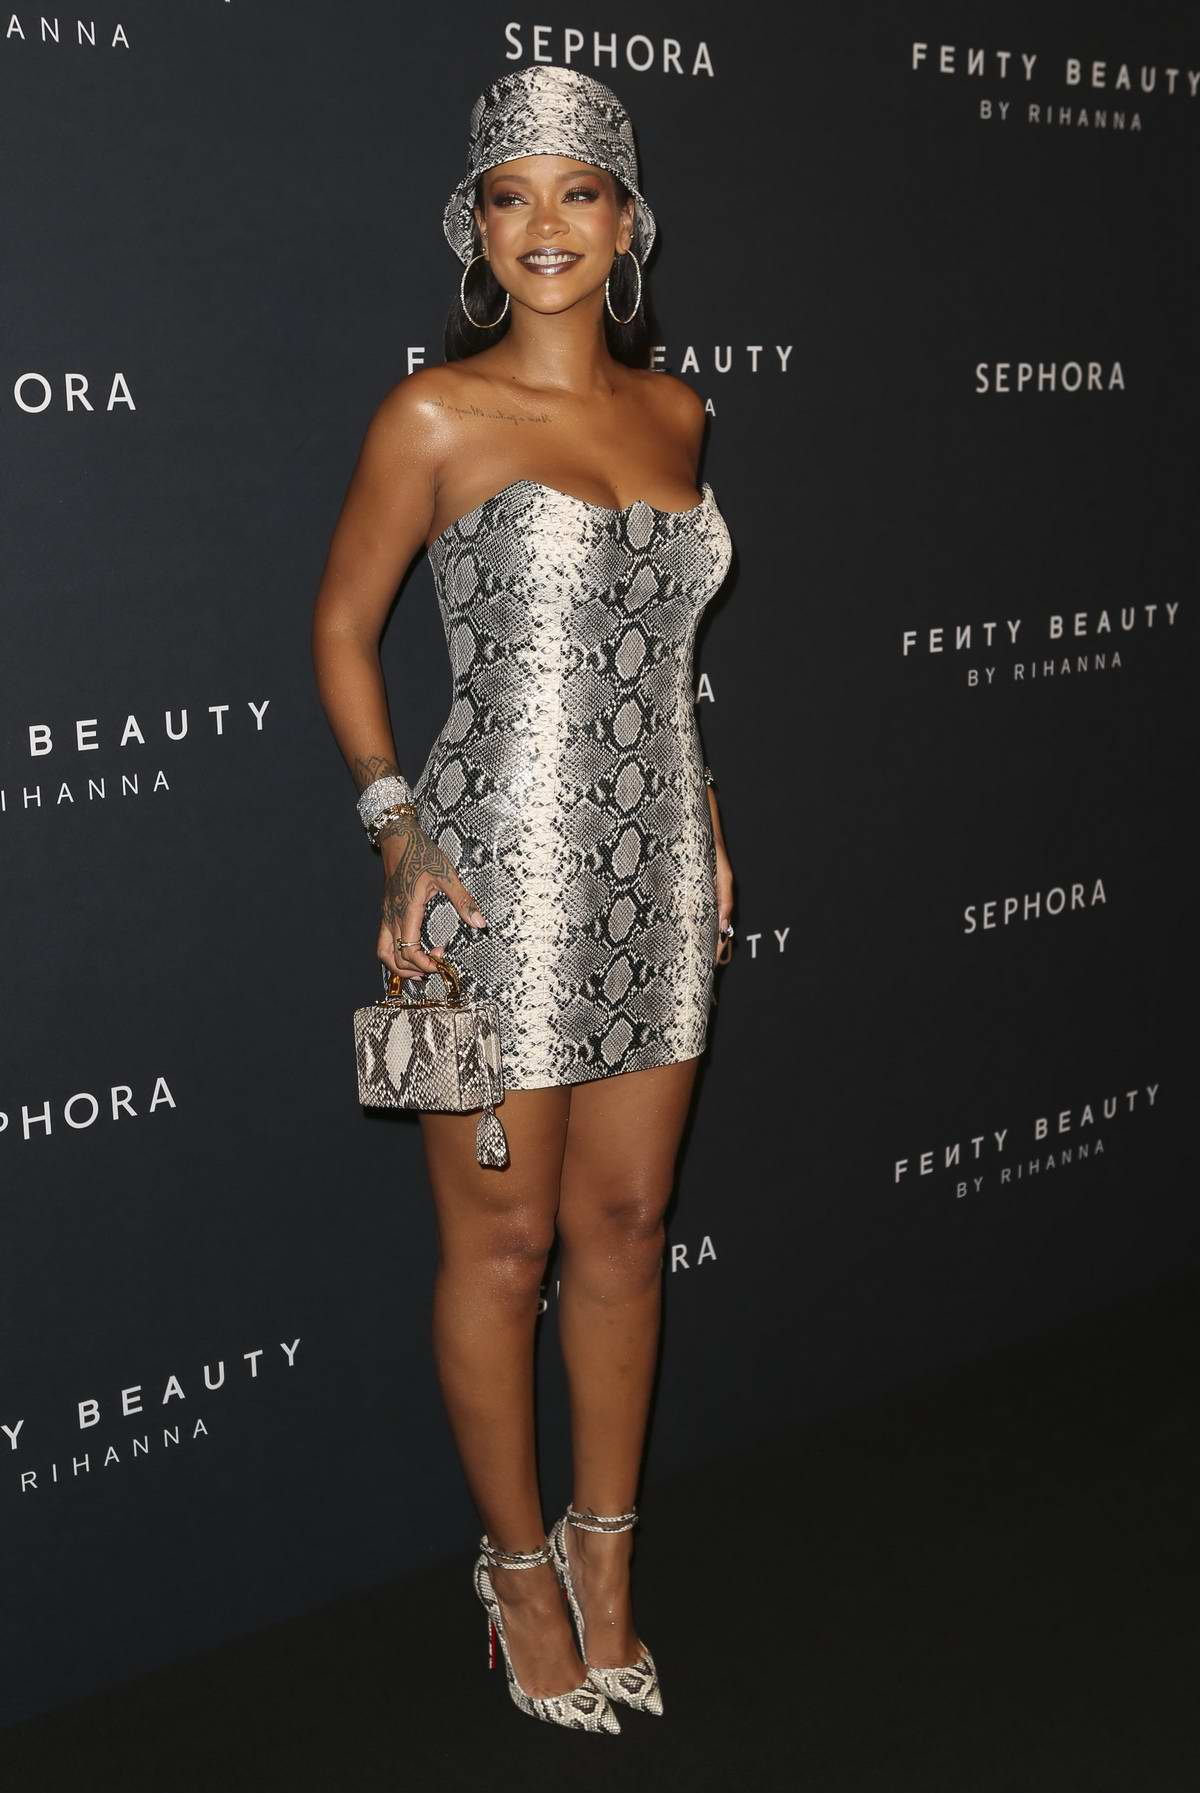 Rihanna attends the Fenty Beauty by Rihanna Anniversary Event at Overseas Passenger Terminal in Sydney, Australia